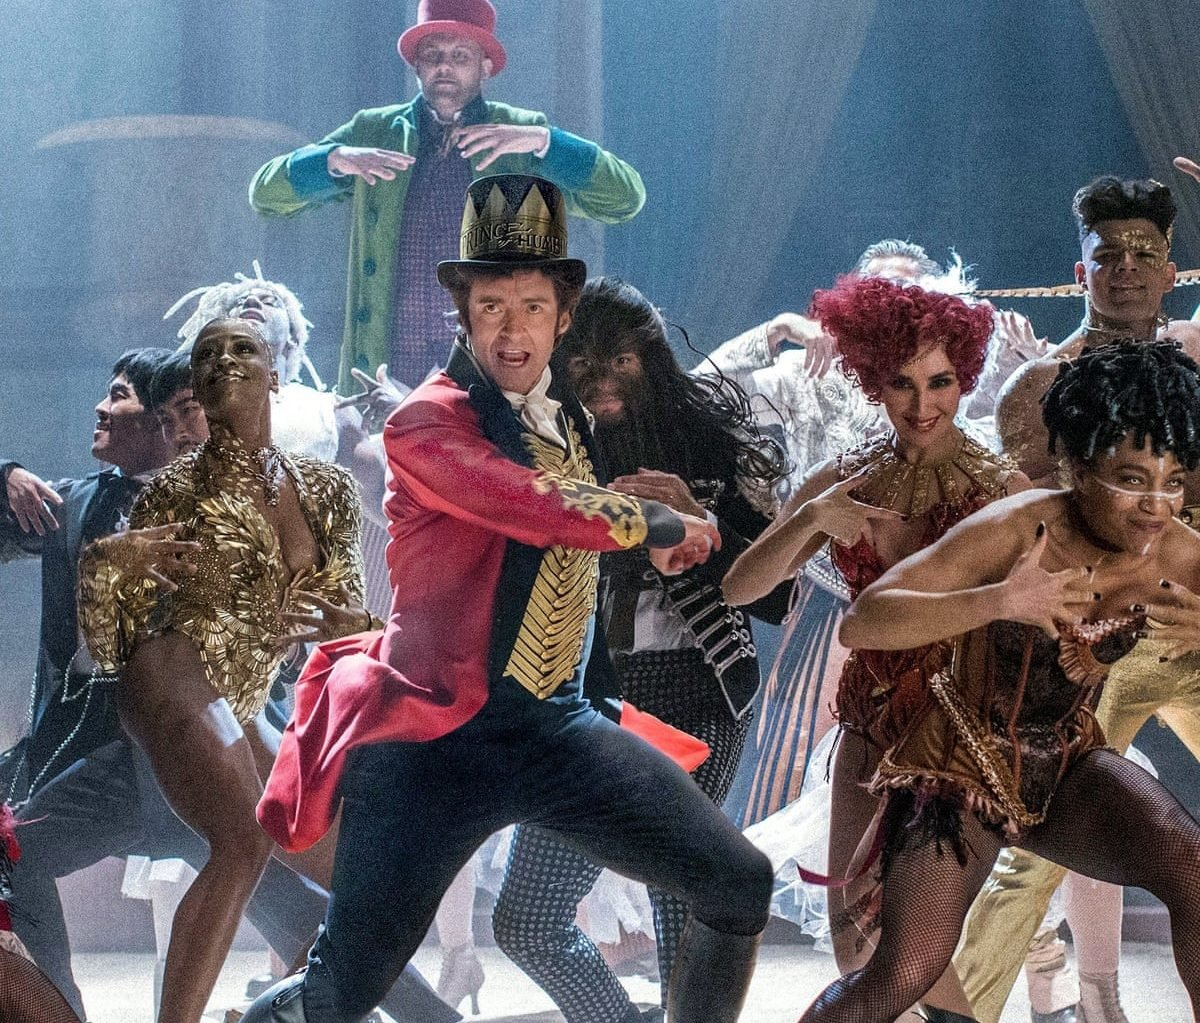 Greatest Showman e1622630668411 Films 'Based On A True Story' That Completely Lied To Us